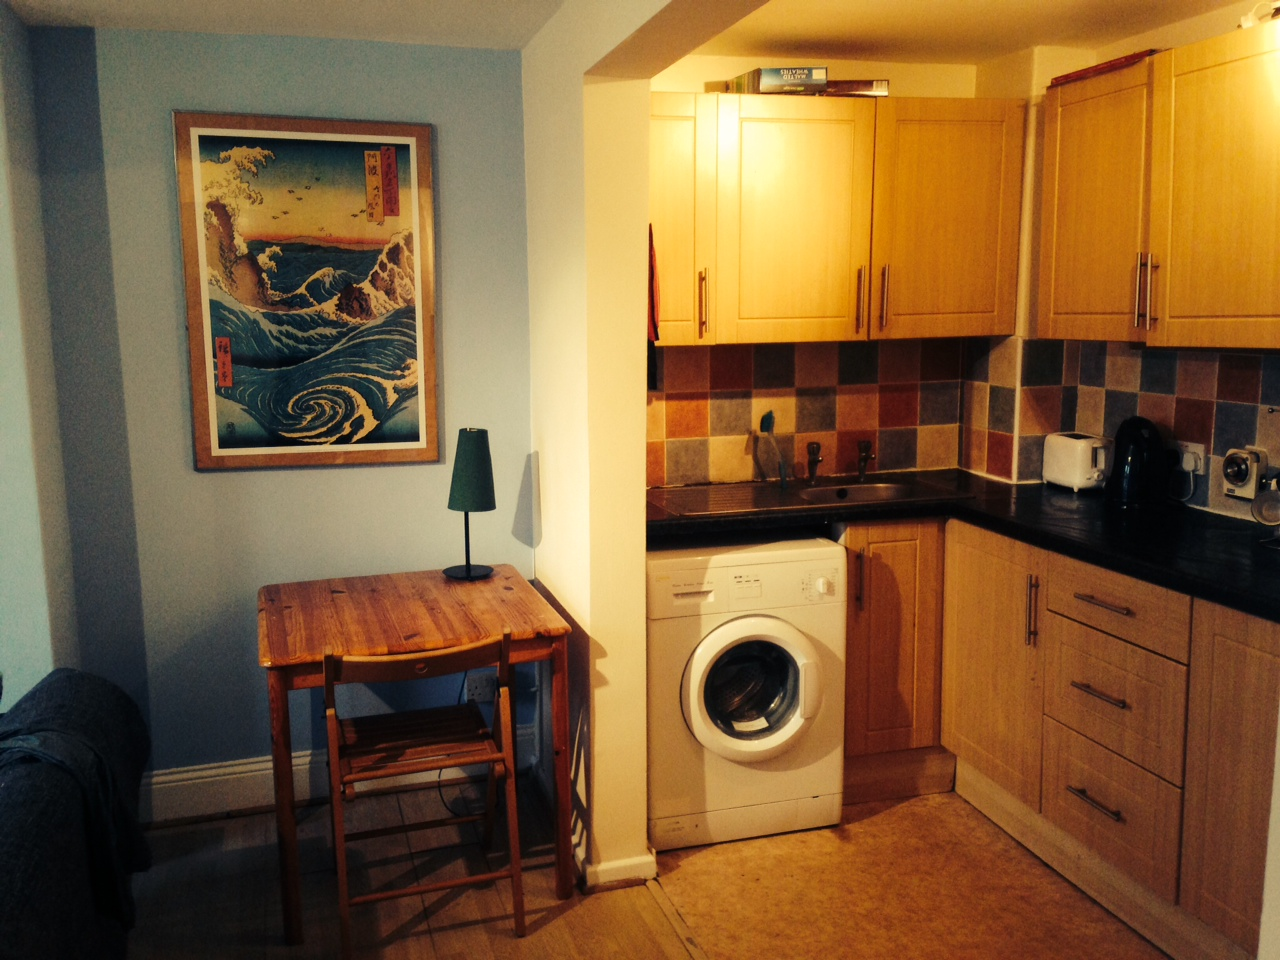 Meldon Terrace – 4 Bed Professional House-Share